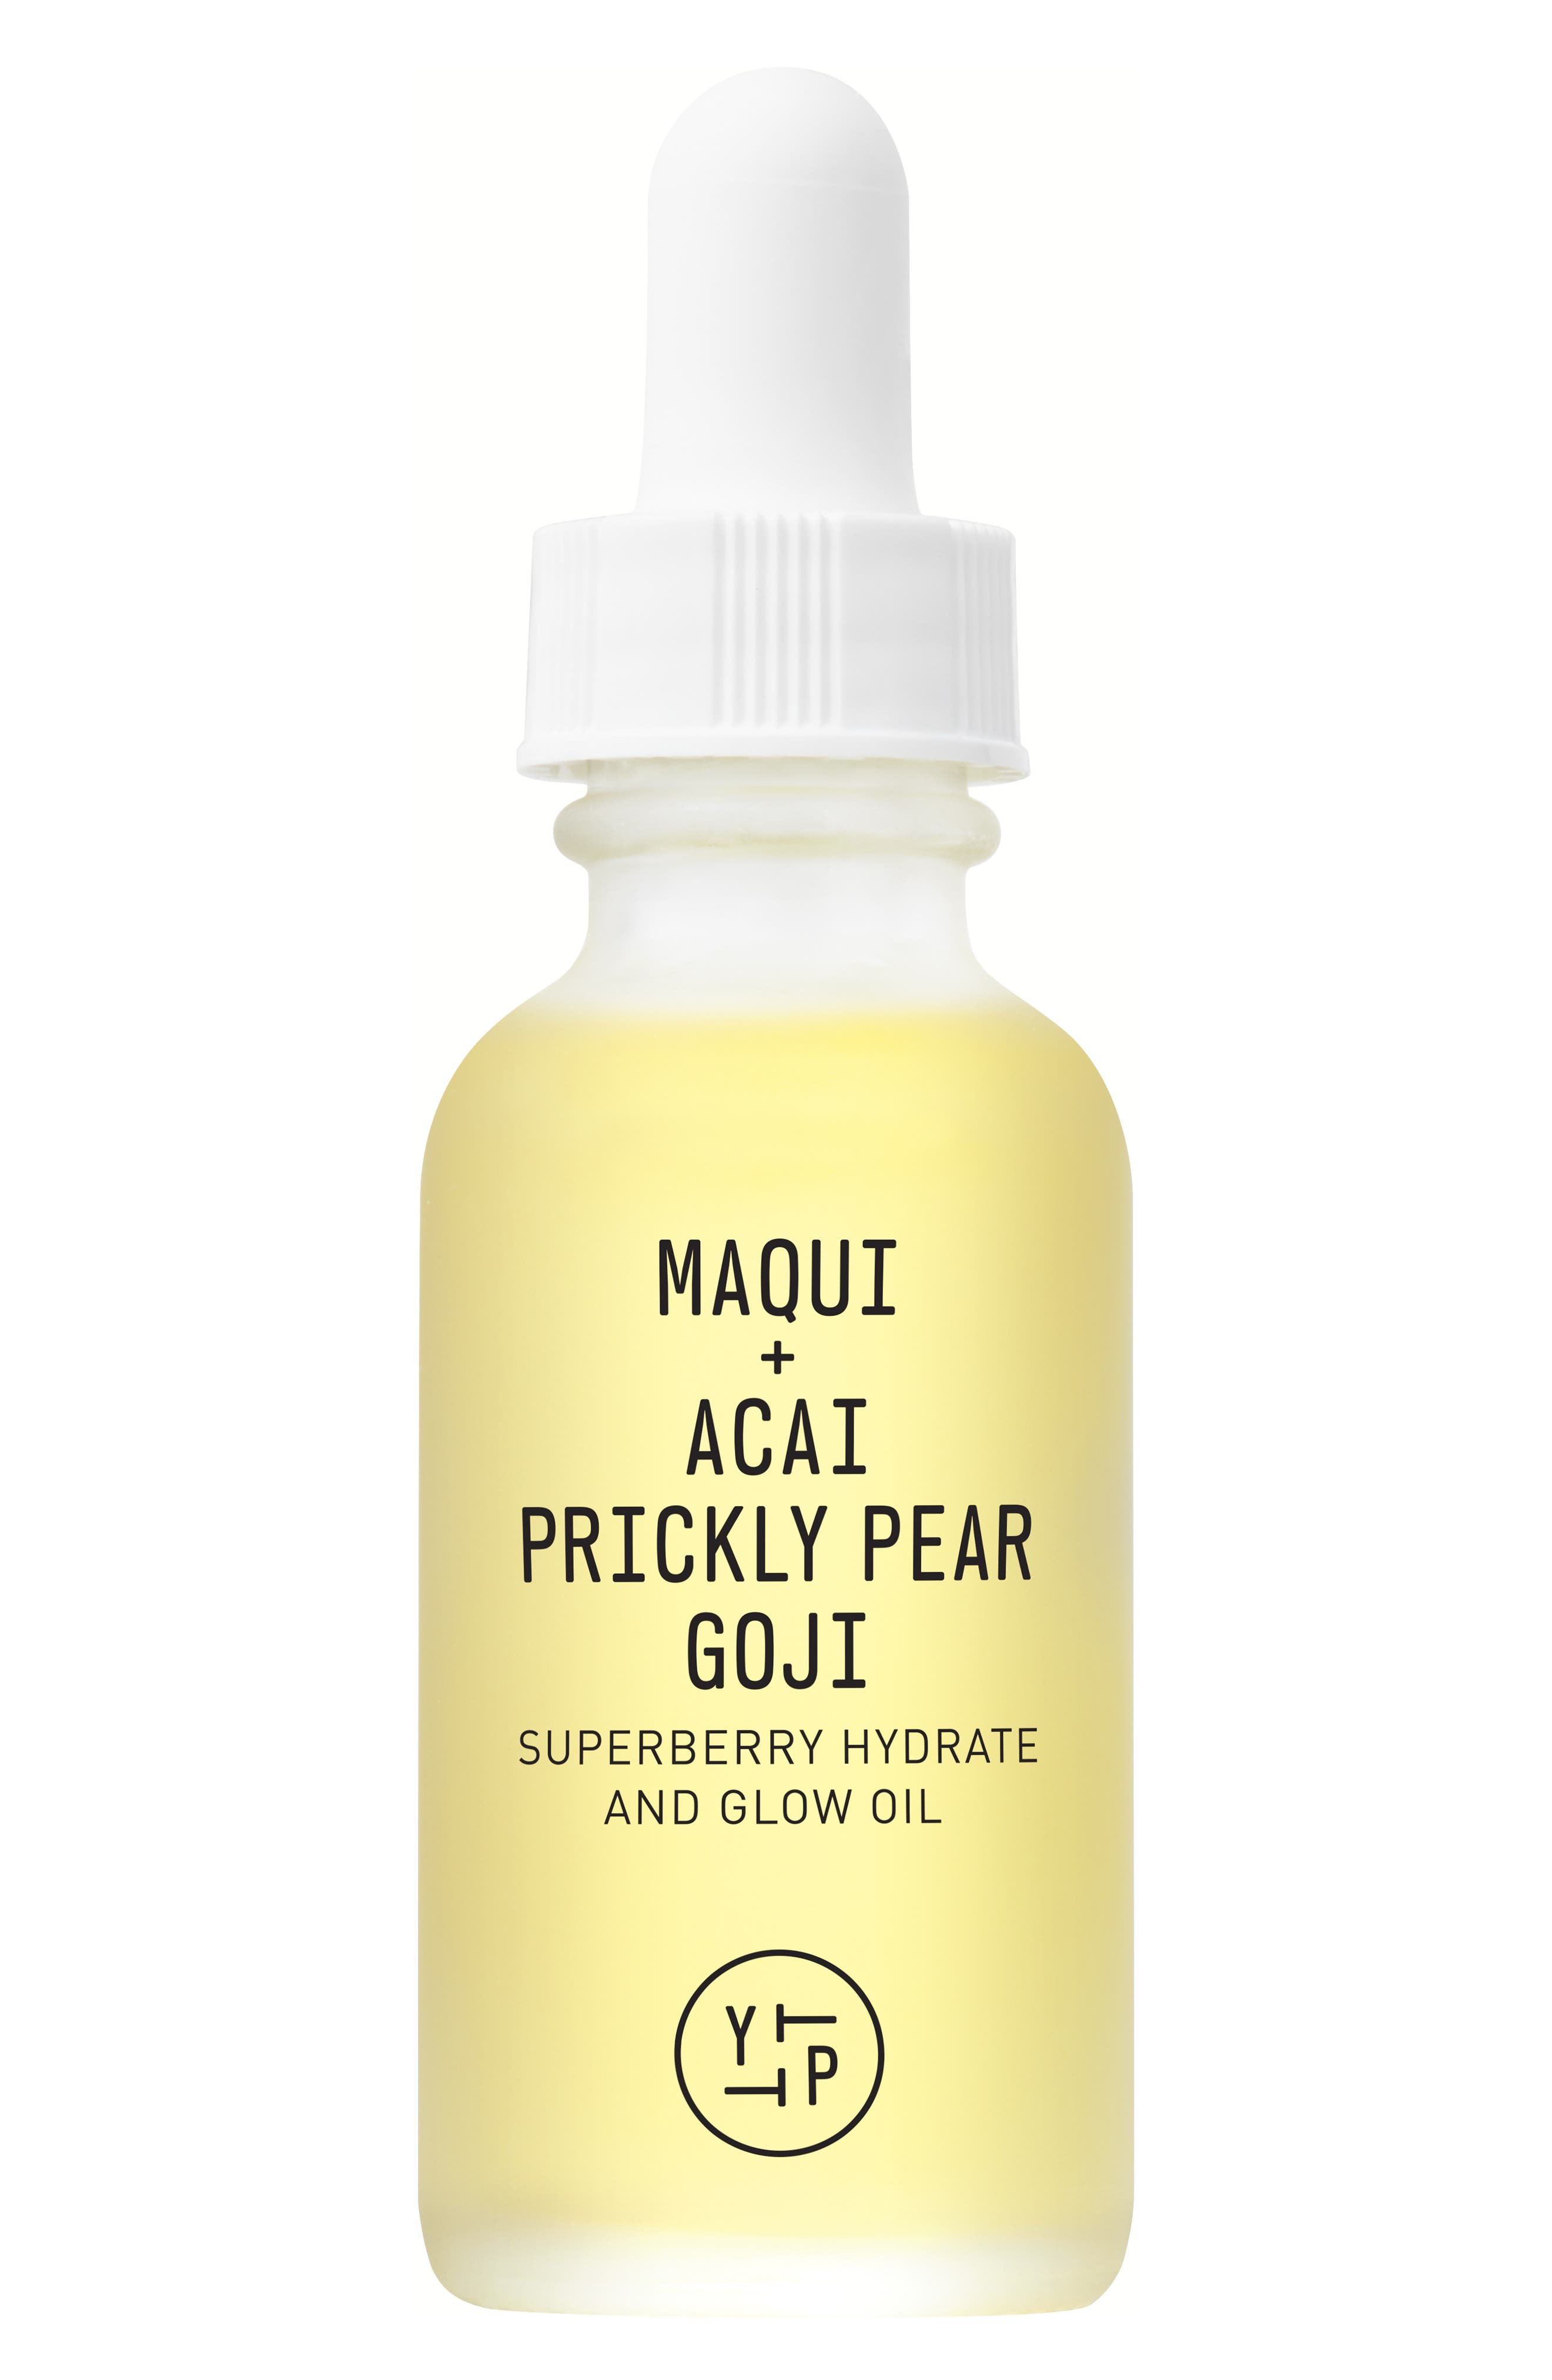 Youth to the People Superberry Hydrate & Glow Oil in No Color at Nordstrom